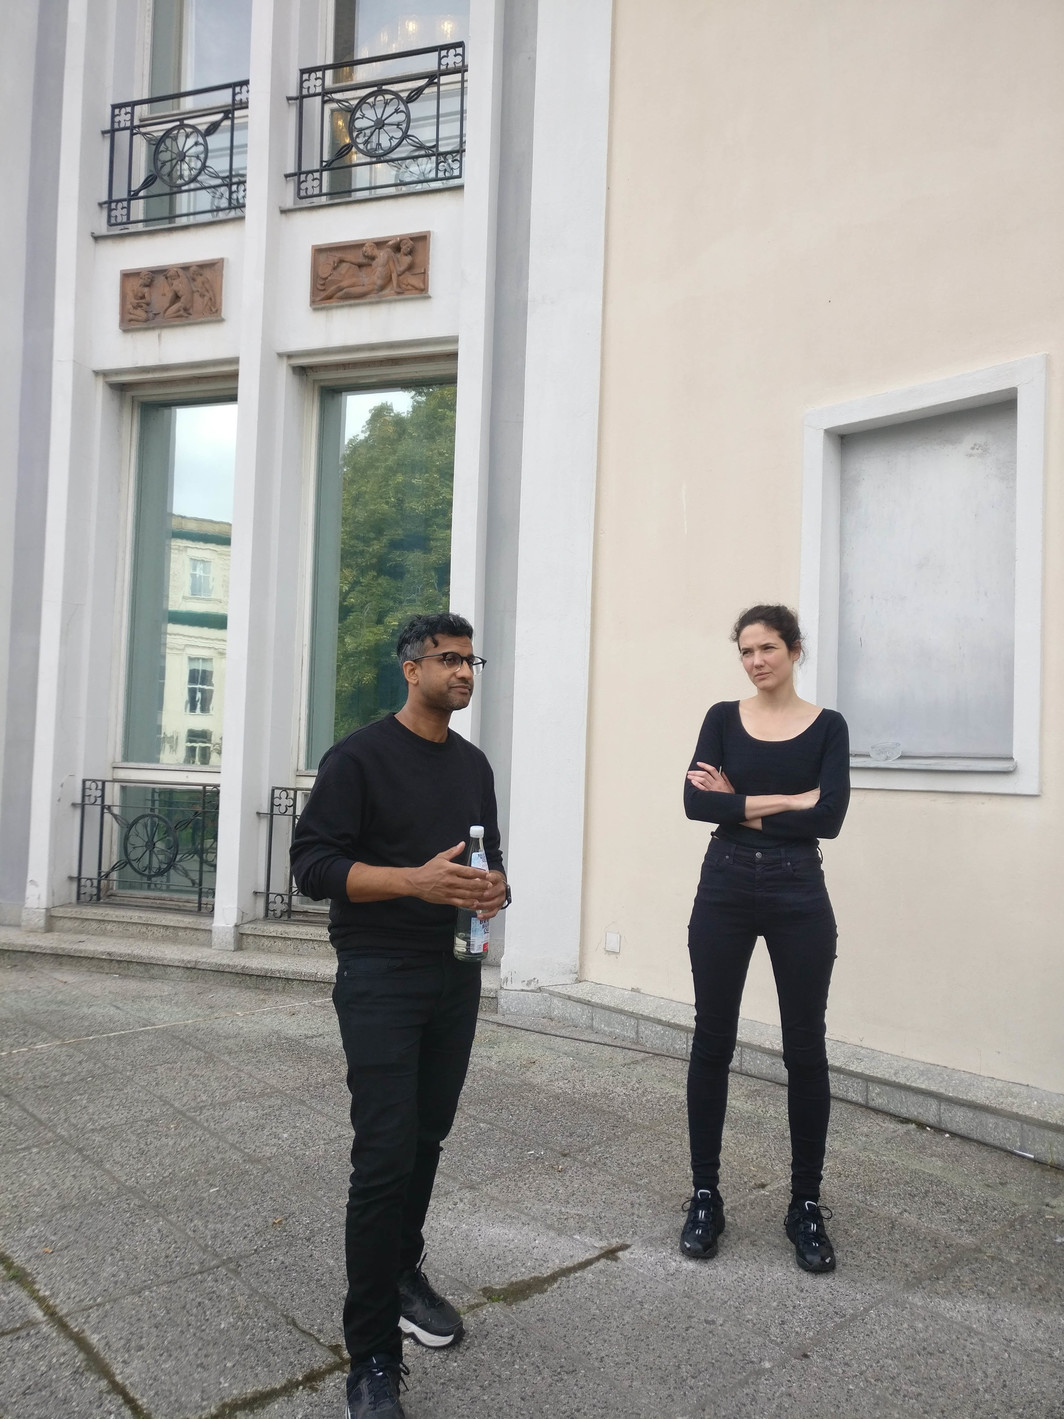 Artists Christopher Kulendran Thomas and curator Annika Kuhlmann.